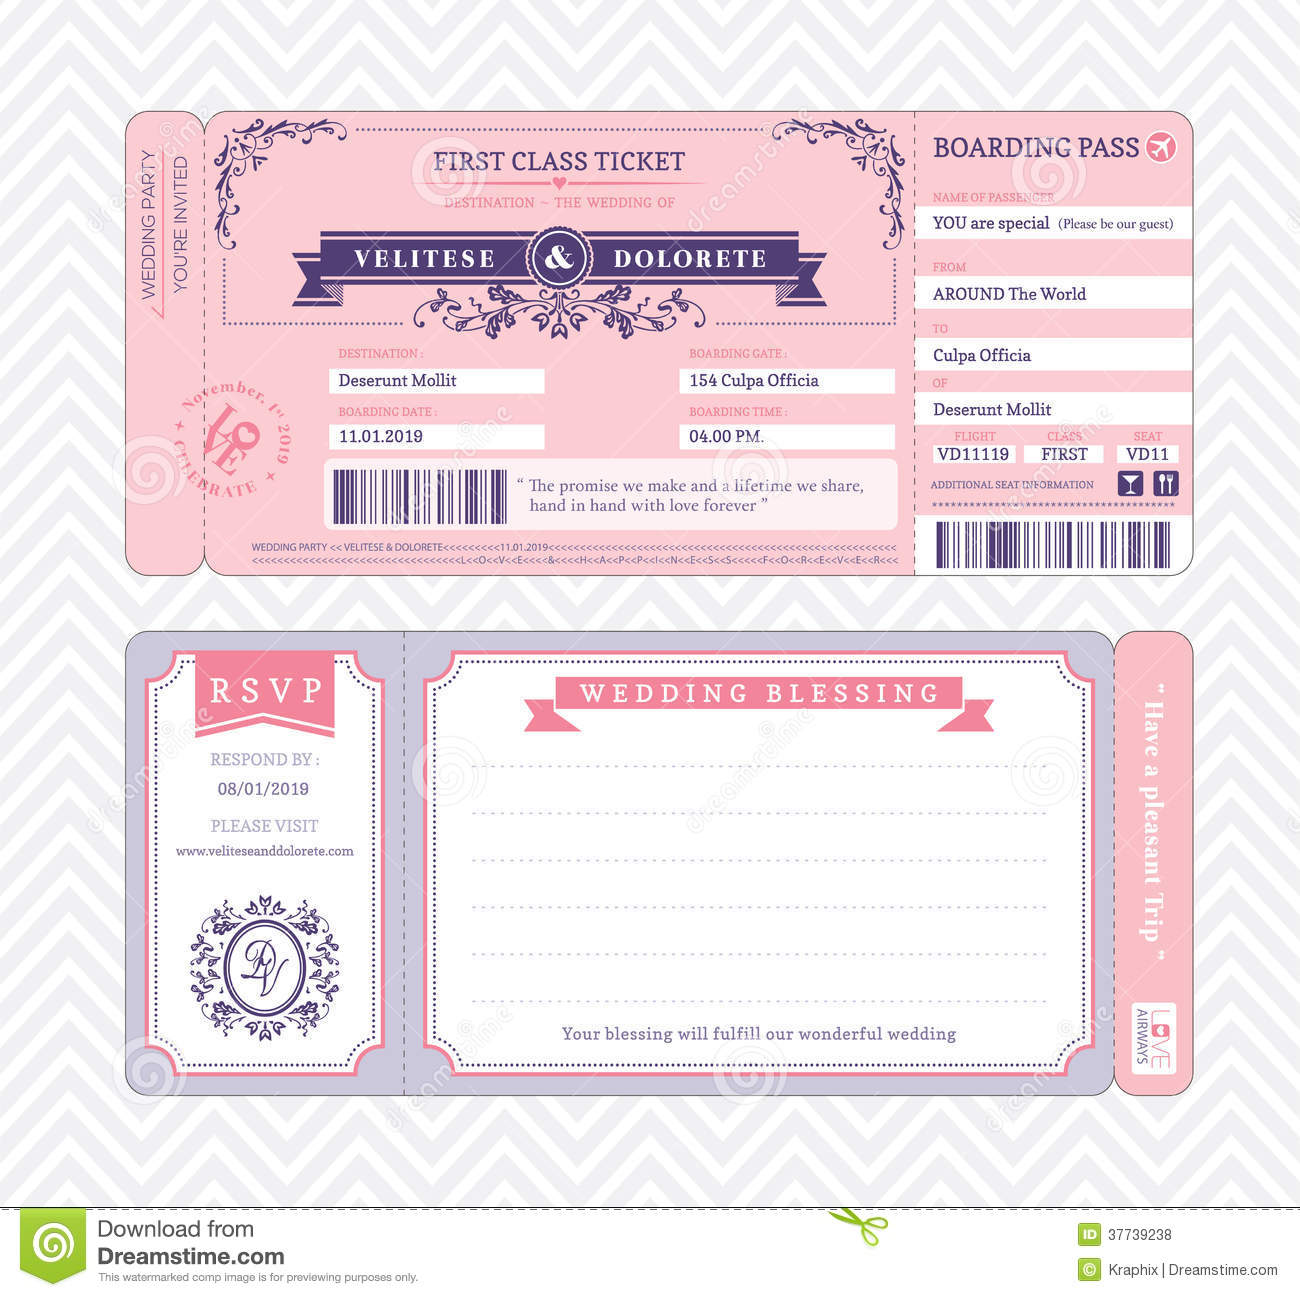 Wonderful Boarding Pass Wedding Invitation Template Inside Free Pass Template